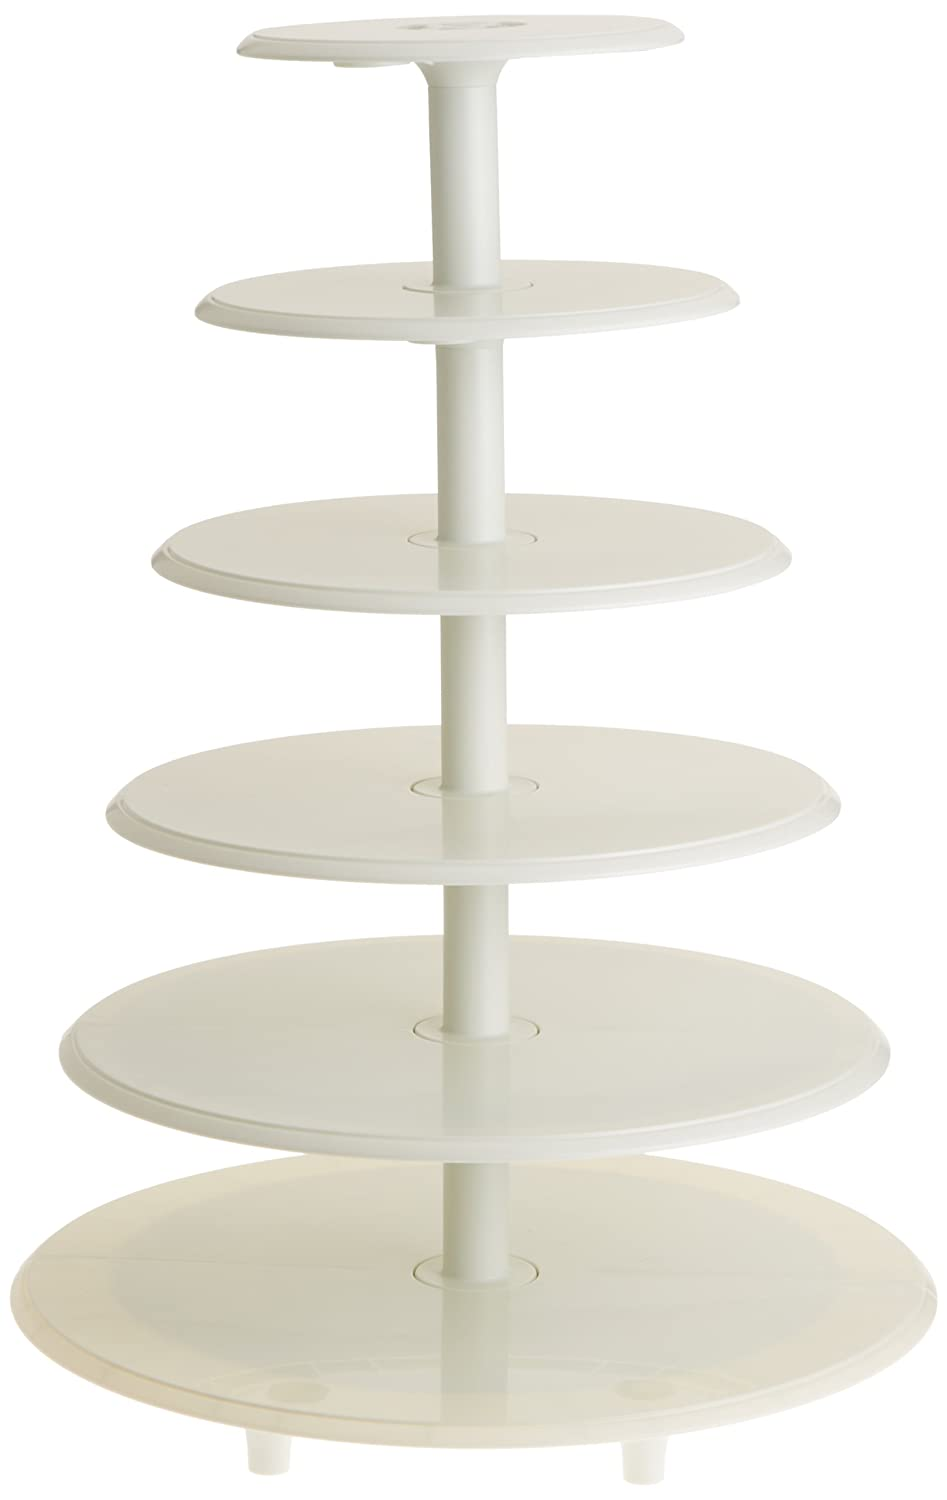 Related For Fresh Wilton Cake Stands  sc 1 st  About Collection Image of Cake & Fresh Wilton Cake Stands.cakes N More 3 Tier Dessert Stand | All ...